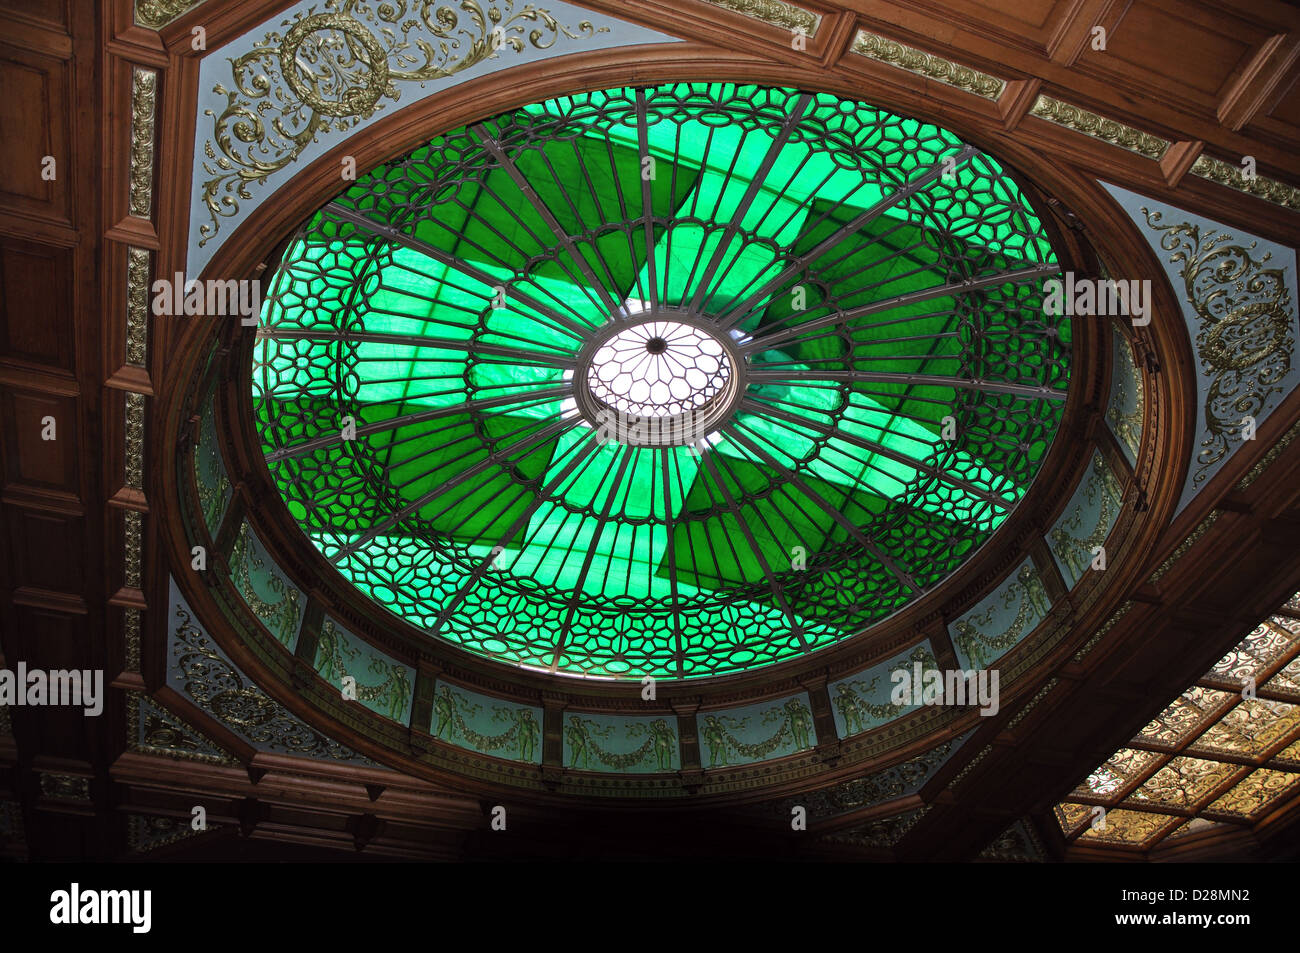 interior roof of Waverley station, Edinburgh, Scotland, UK - Stock Image